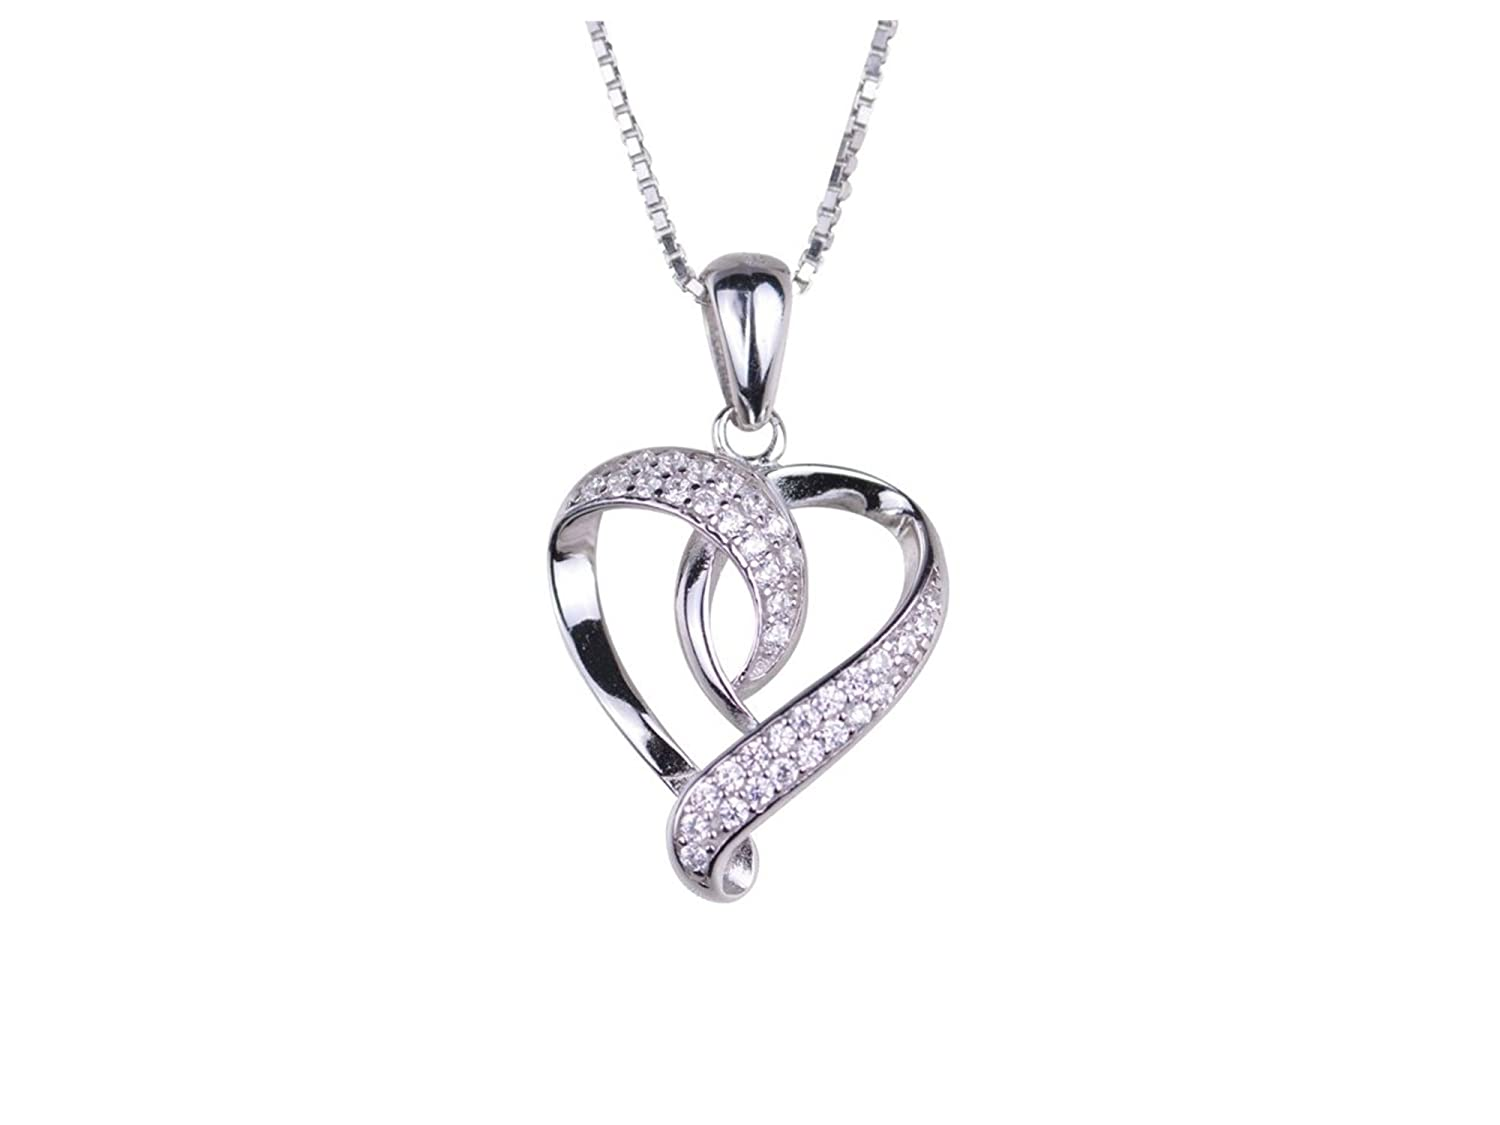 271af7fea94e7 Amazon.com  Global Huntress S925 Sterling Silver Open Heart Pendant with 38  Round Faceted Cubic Zirconia Stones Gift Boxed  Jewelry